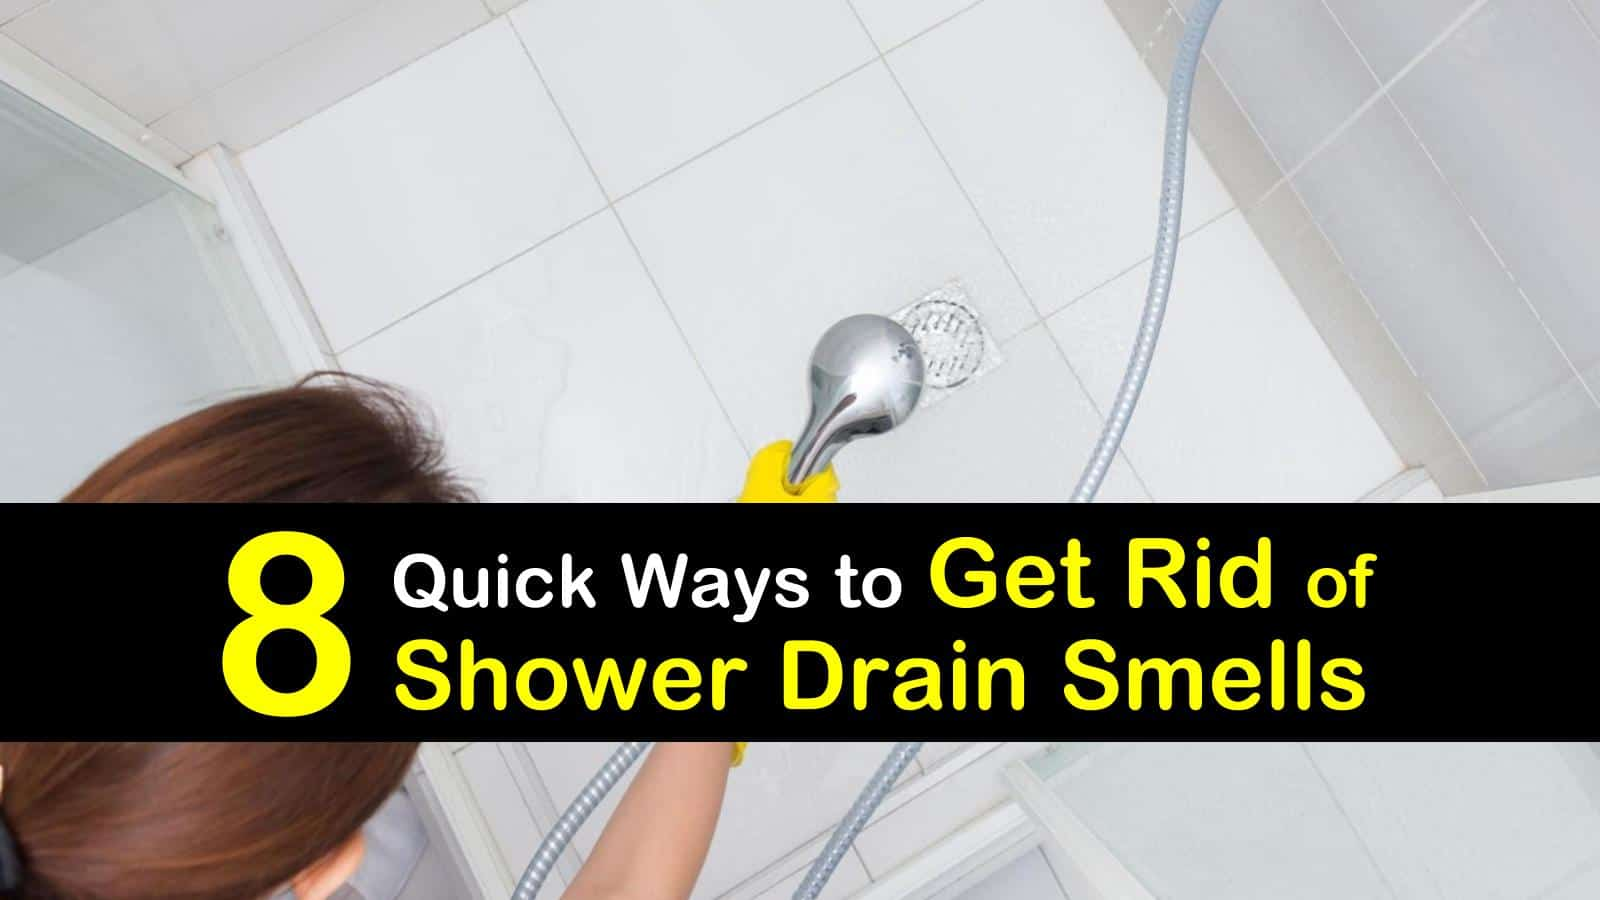 8 Quick Ways to Get Rid of Shower Drain Smells